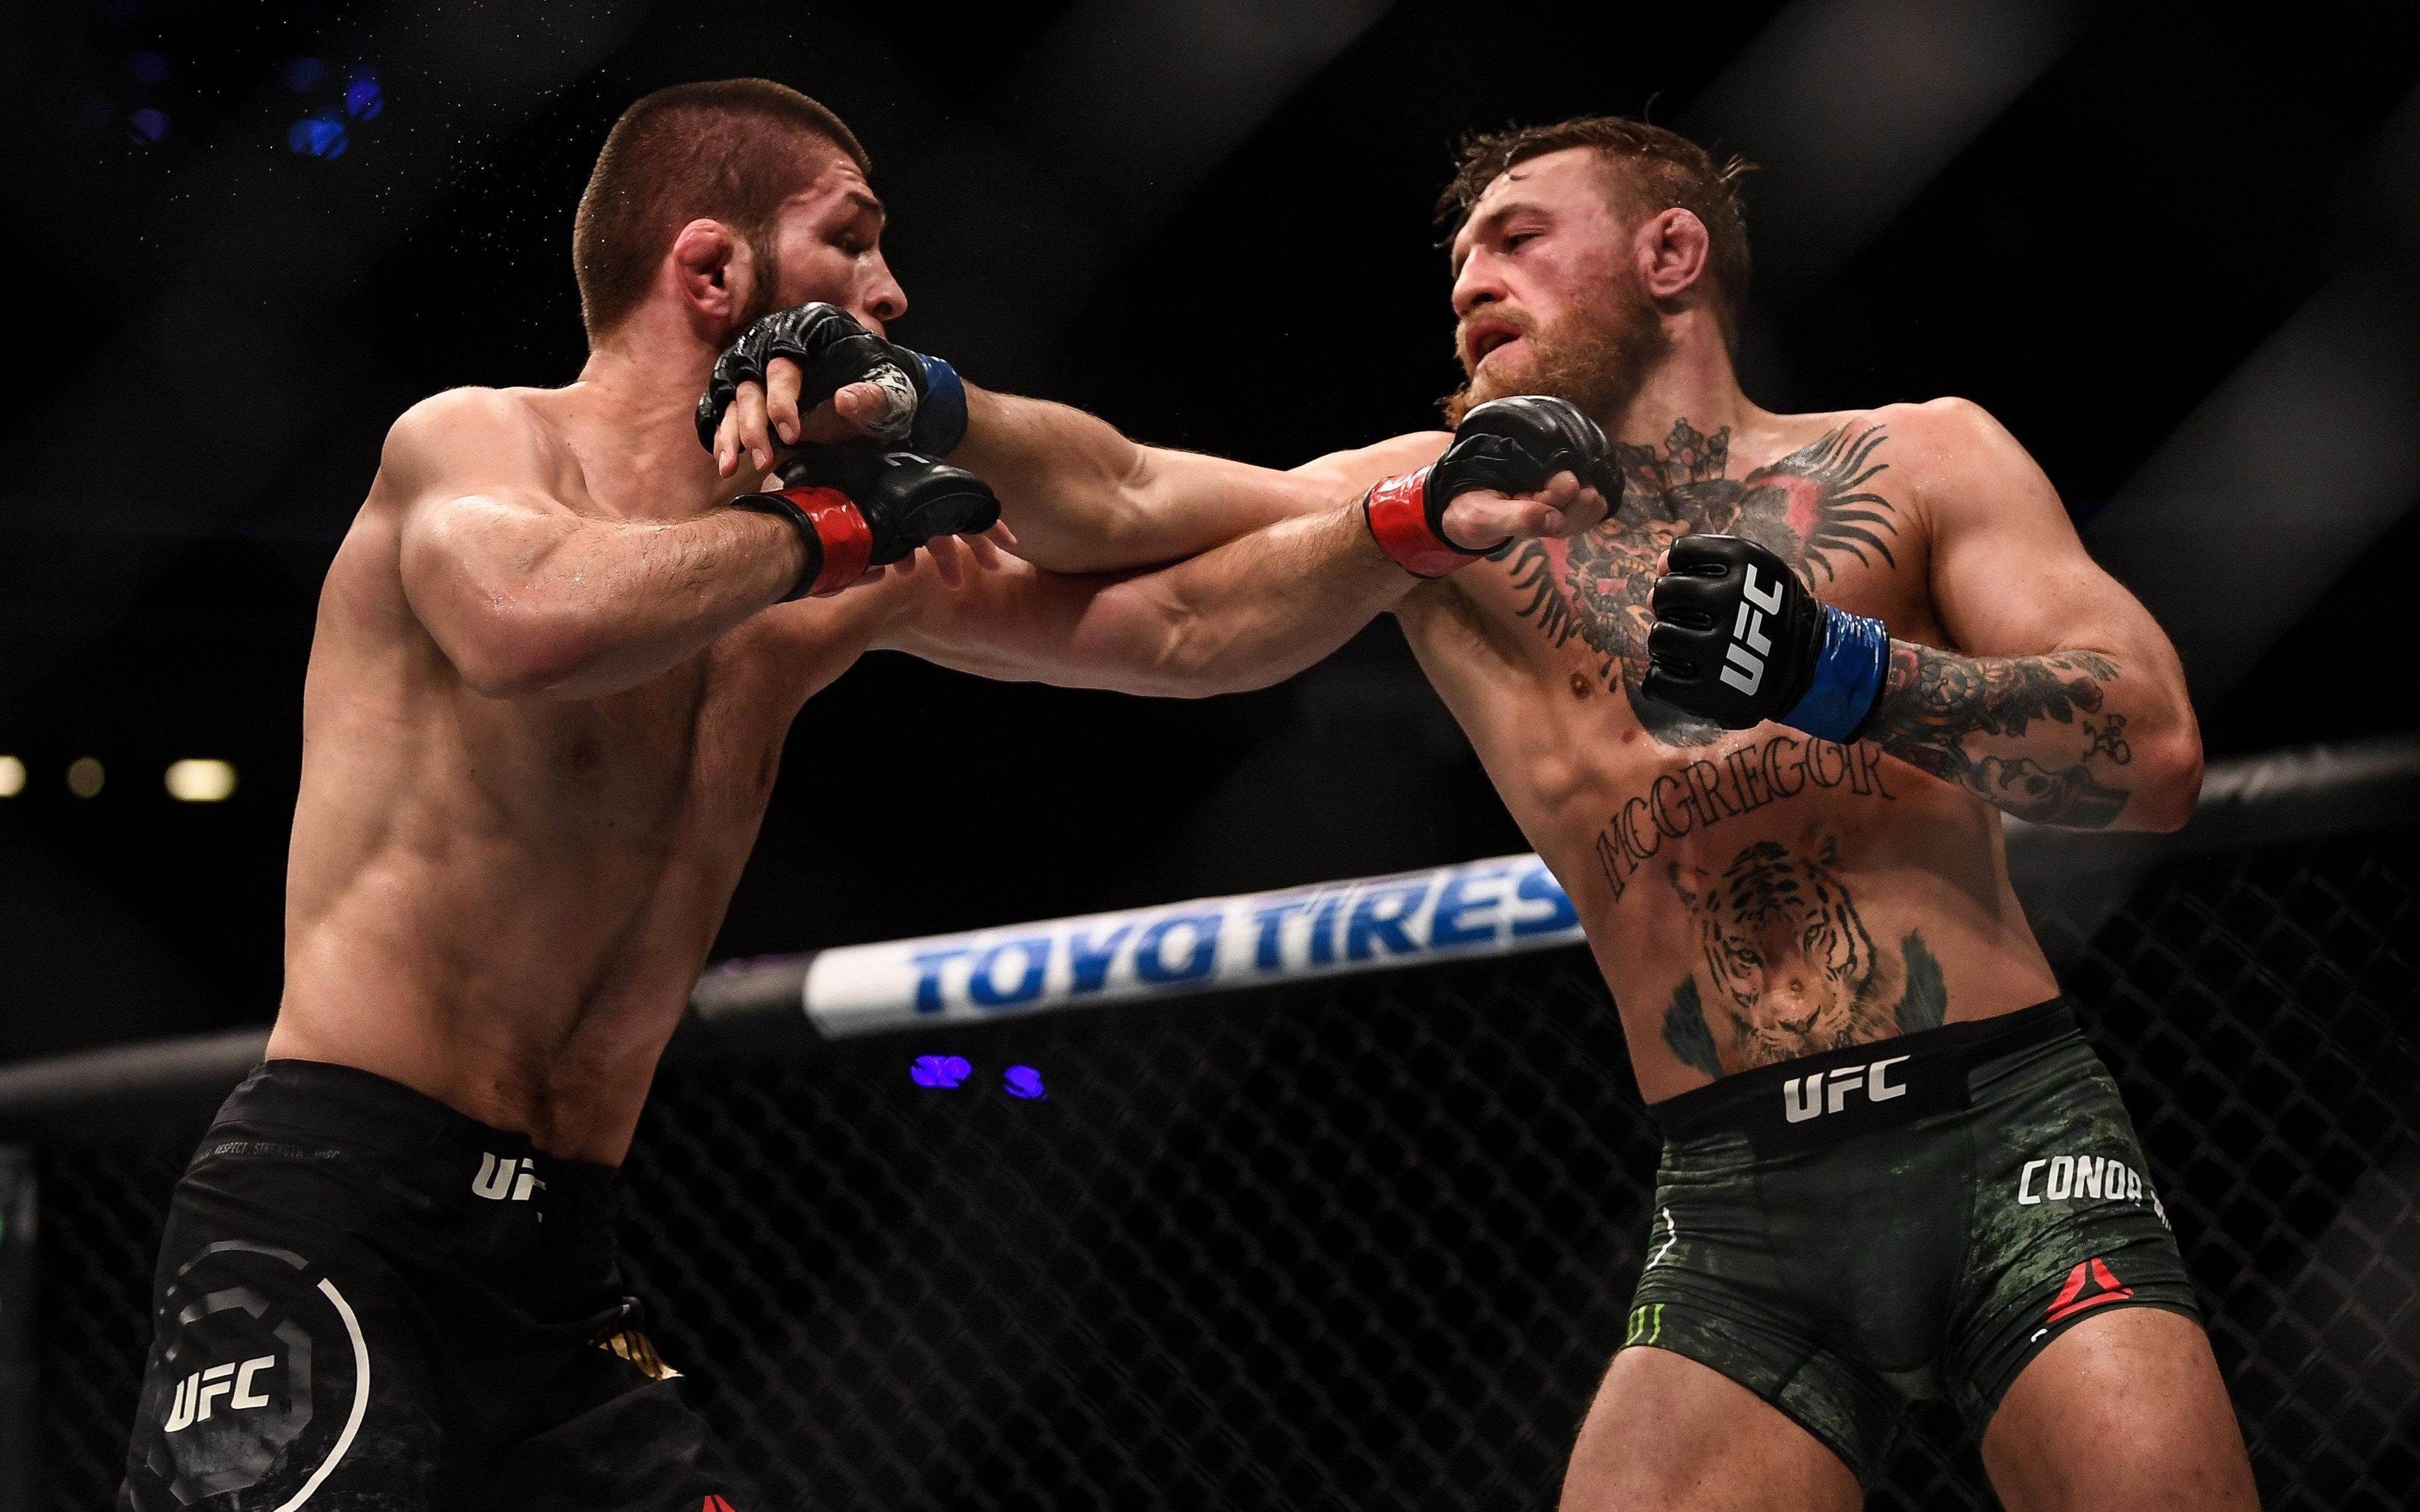 Nurmagomedov dropped McGregor in round two before finishing the fight in the fourth session